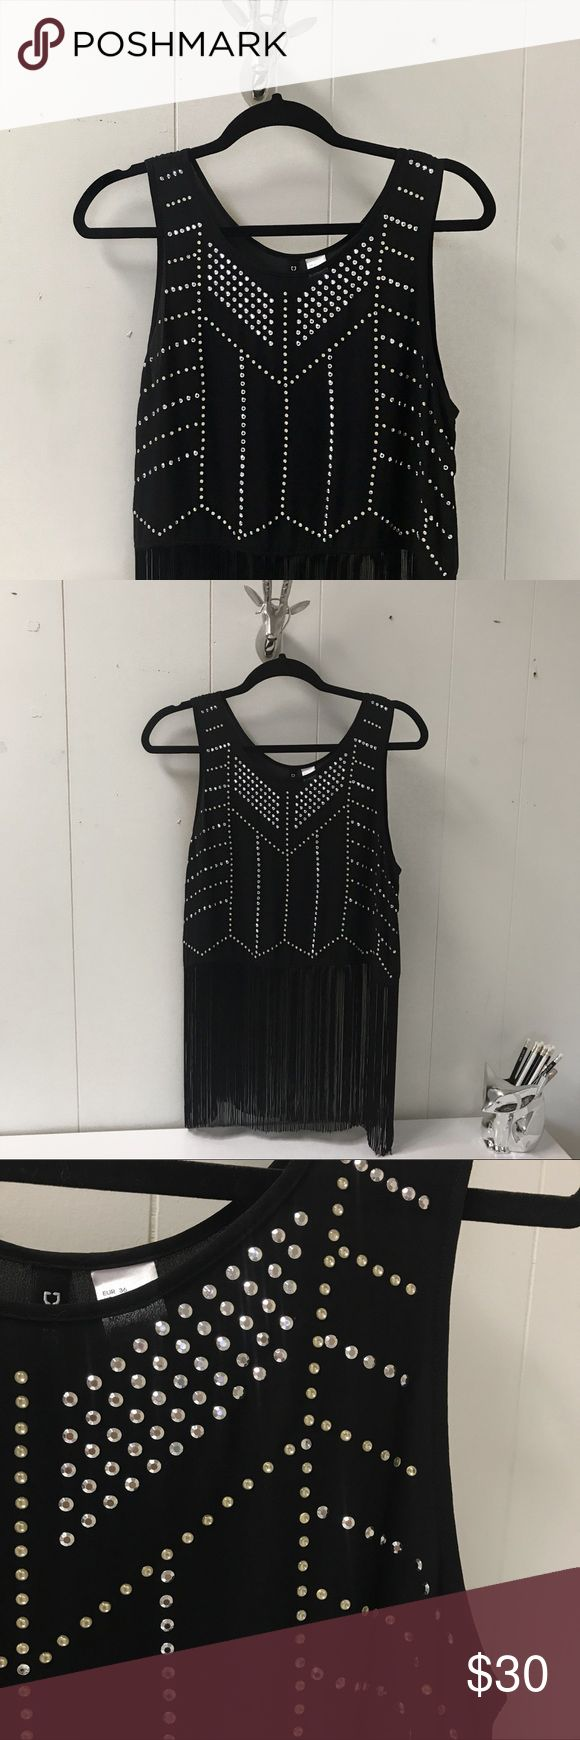 H&M Studded Fringe Tank Sheer tank with silver/gold studs and fringe. Never worn. Classic Coachella style. H&M Tops Tank Tops